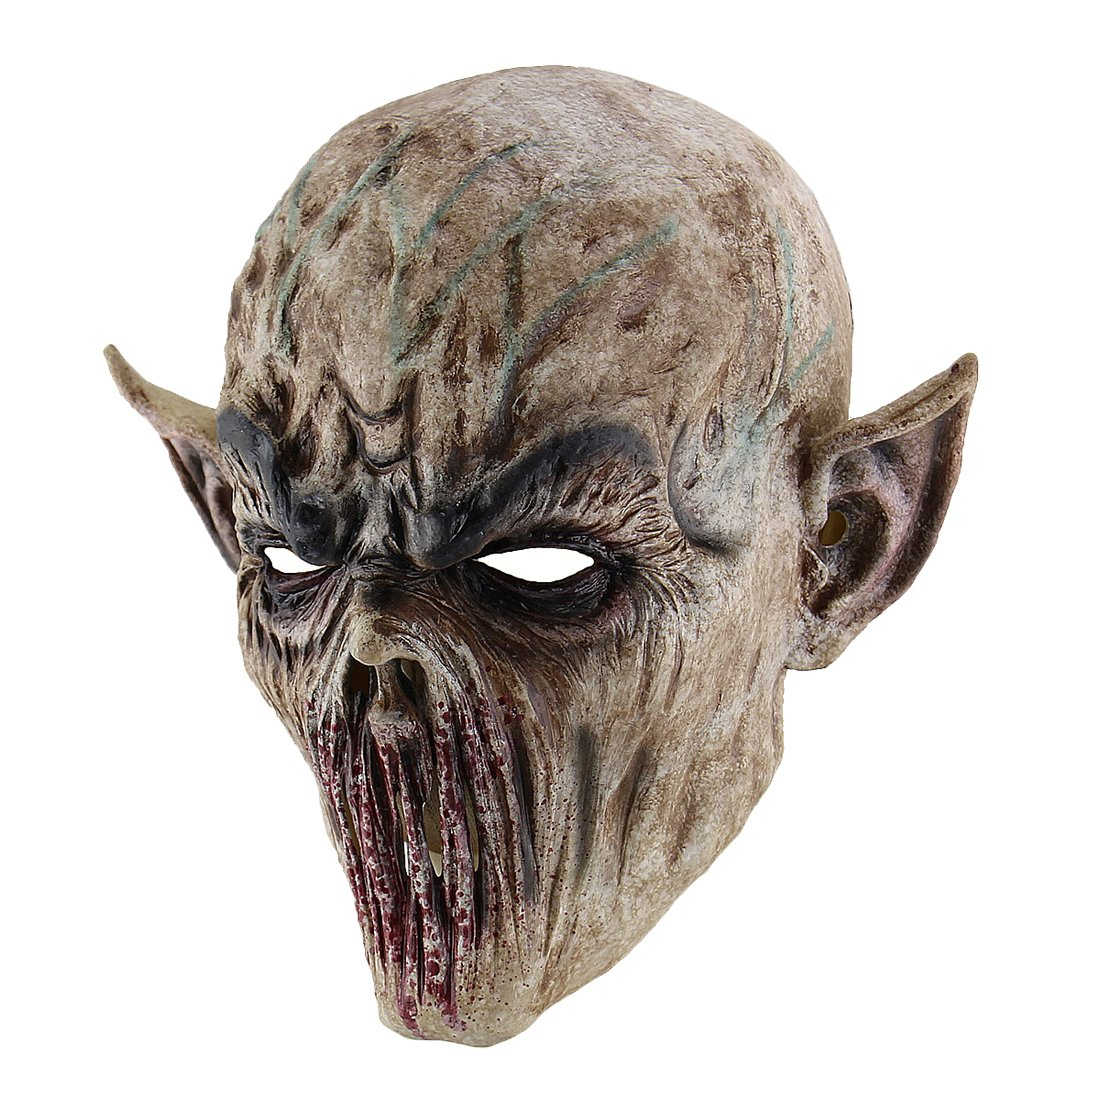 Hophen Scary Halloween Mask Terror Ghost Devil Mask Dance Party Scary Biochemical Alien Zombie Caps Mask by Hophen